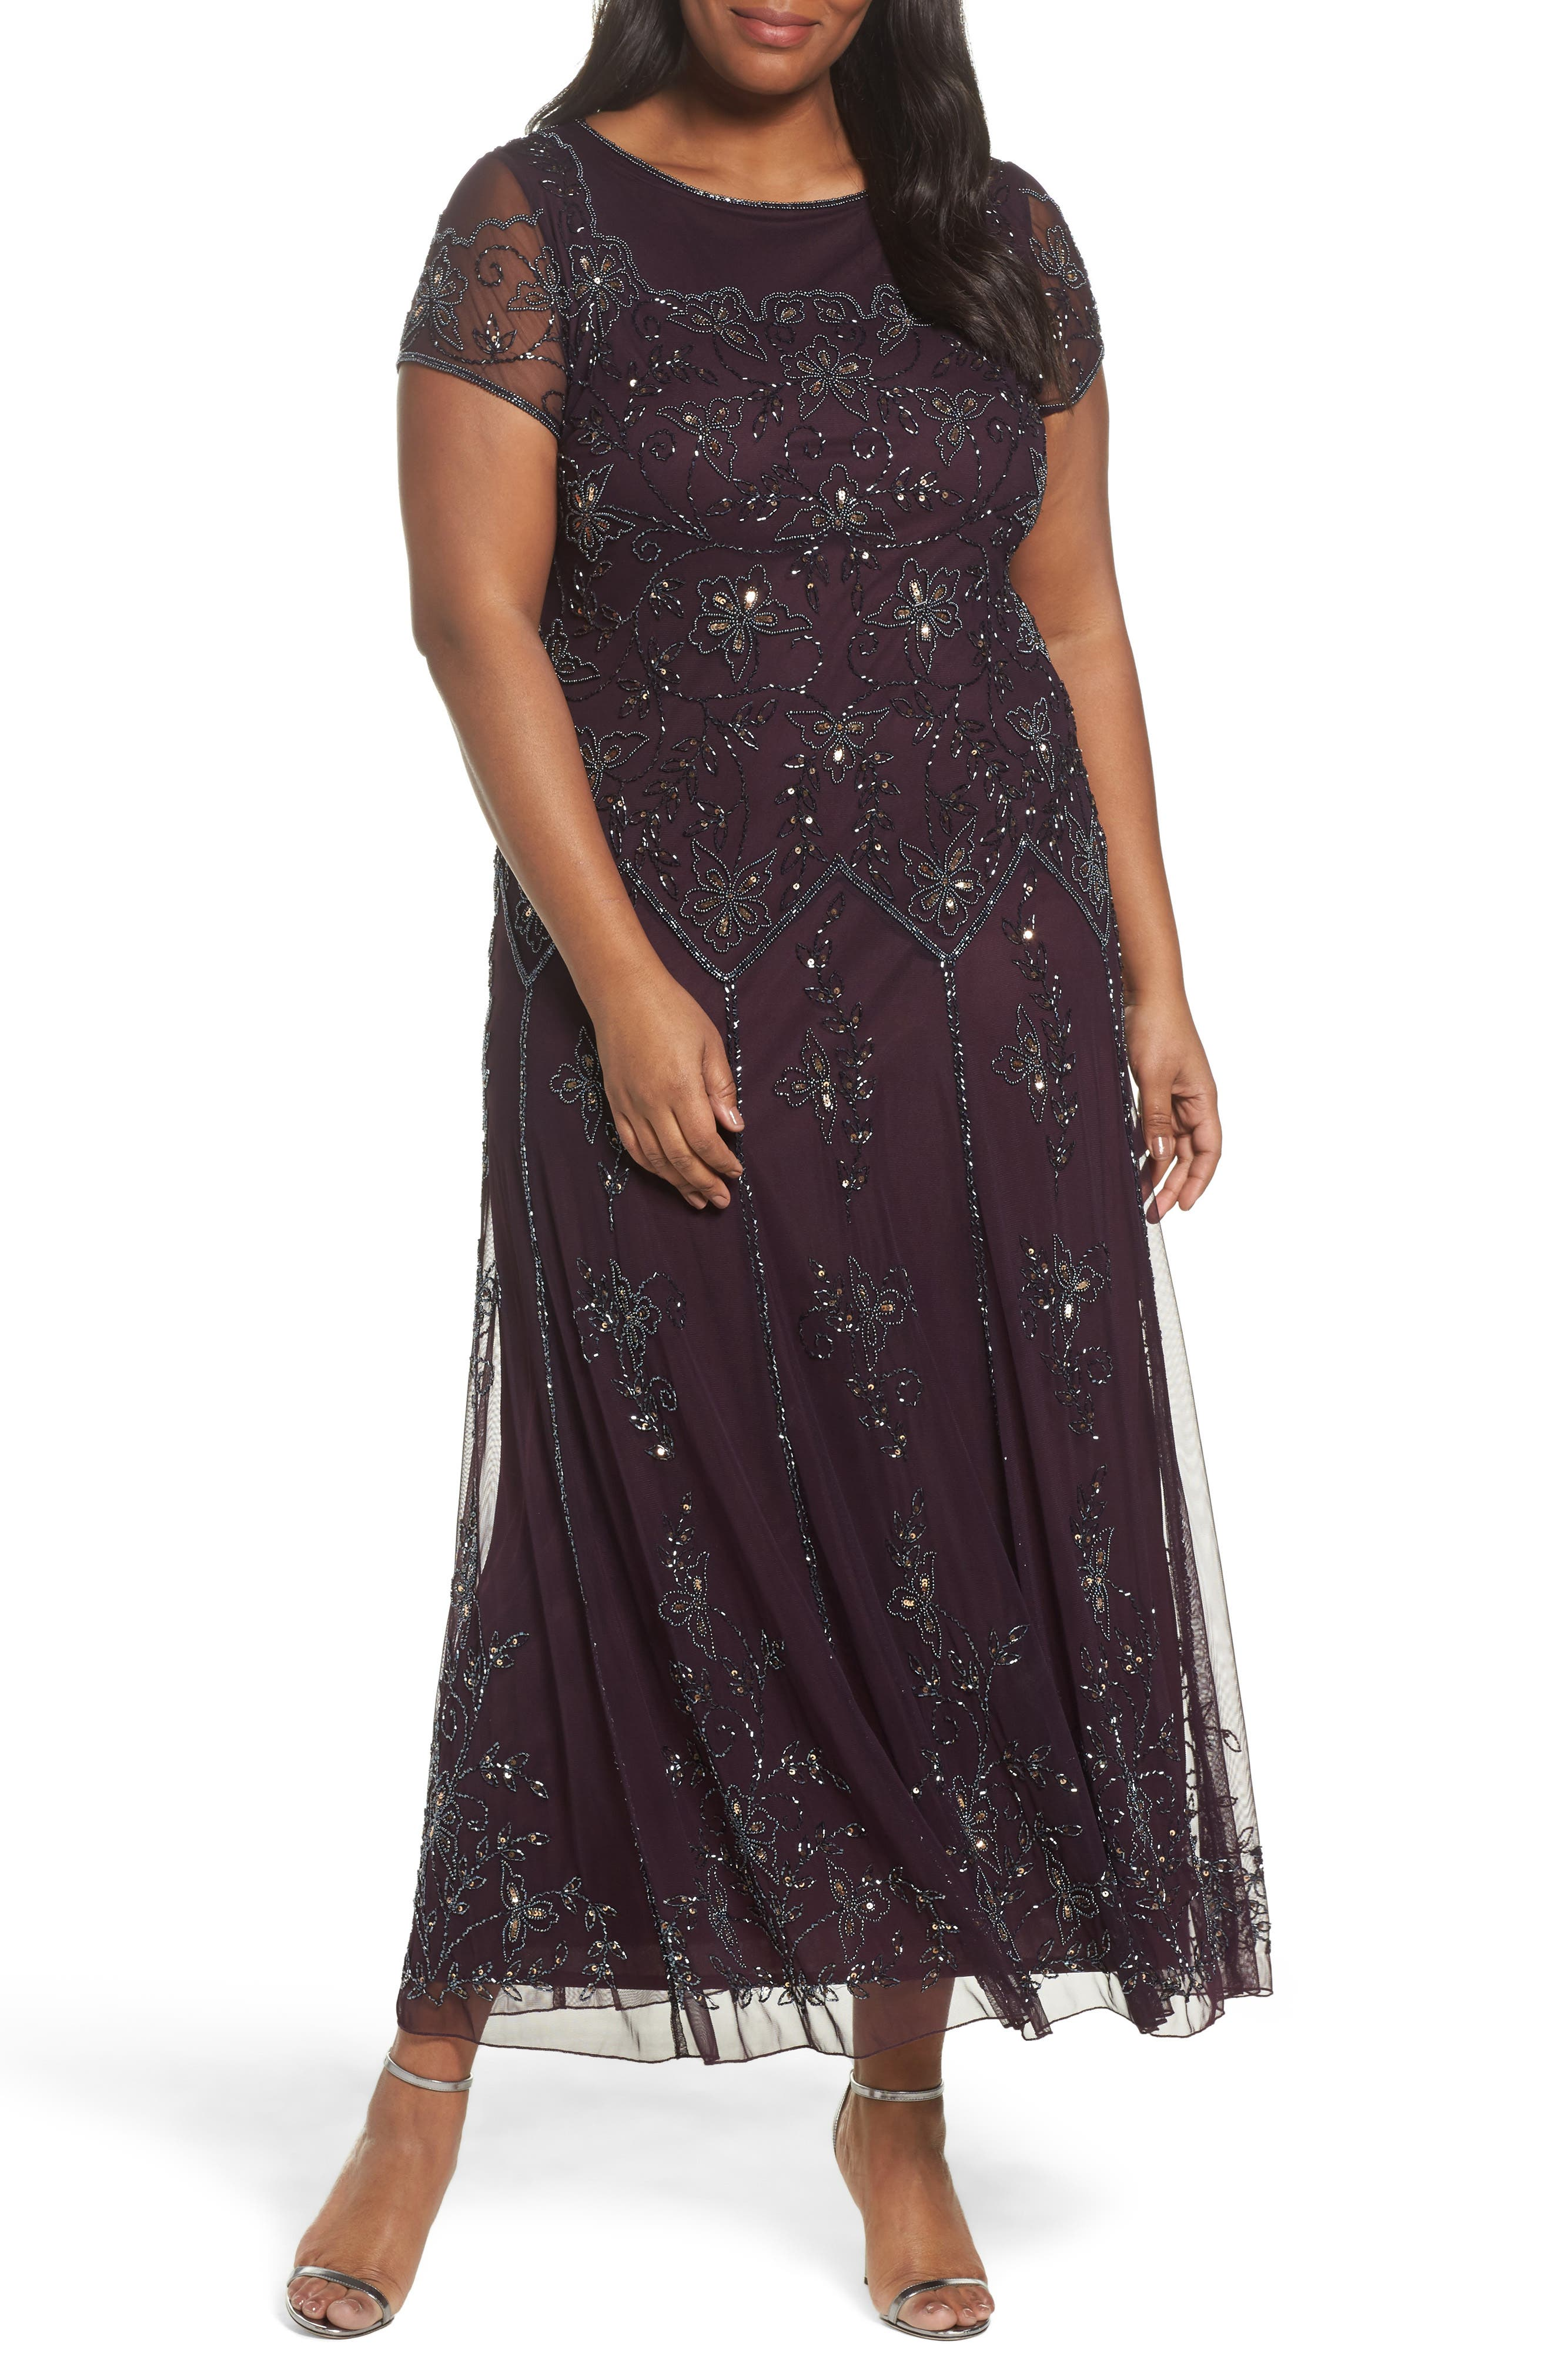 Alternate Image 1 Selected - Pisarro Nights Embeelished Cap Sleeve Gown (Plus Size)